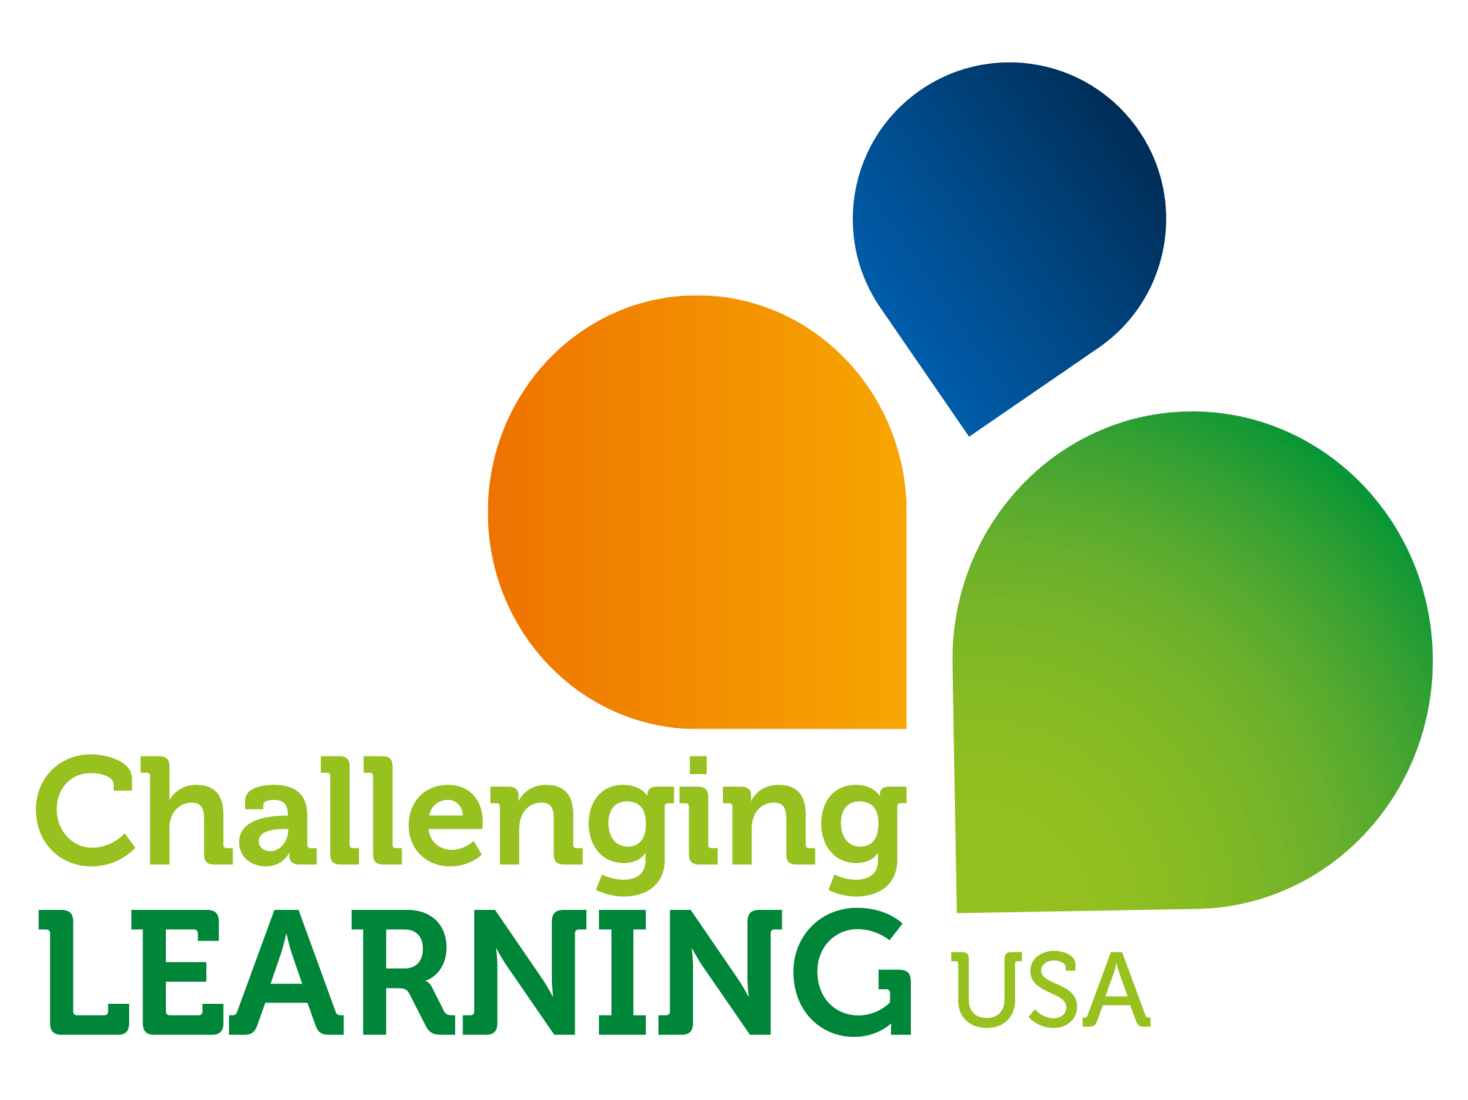 Challenging Learning USA